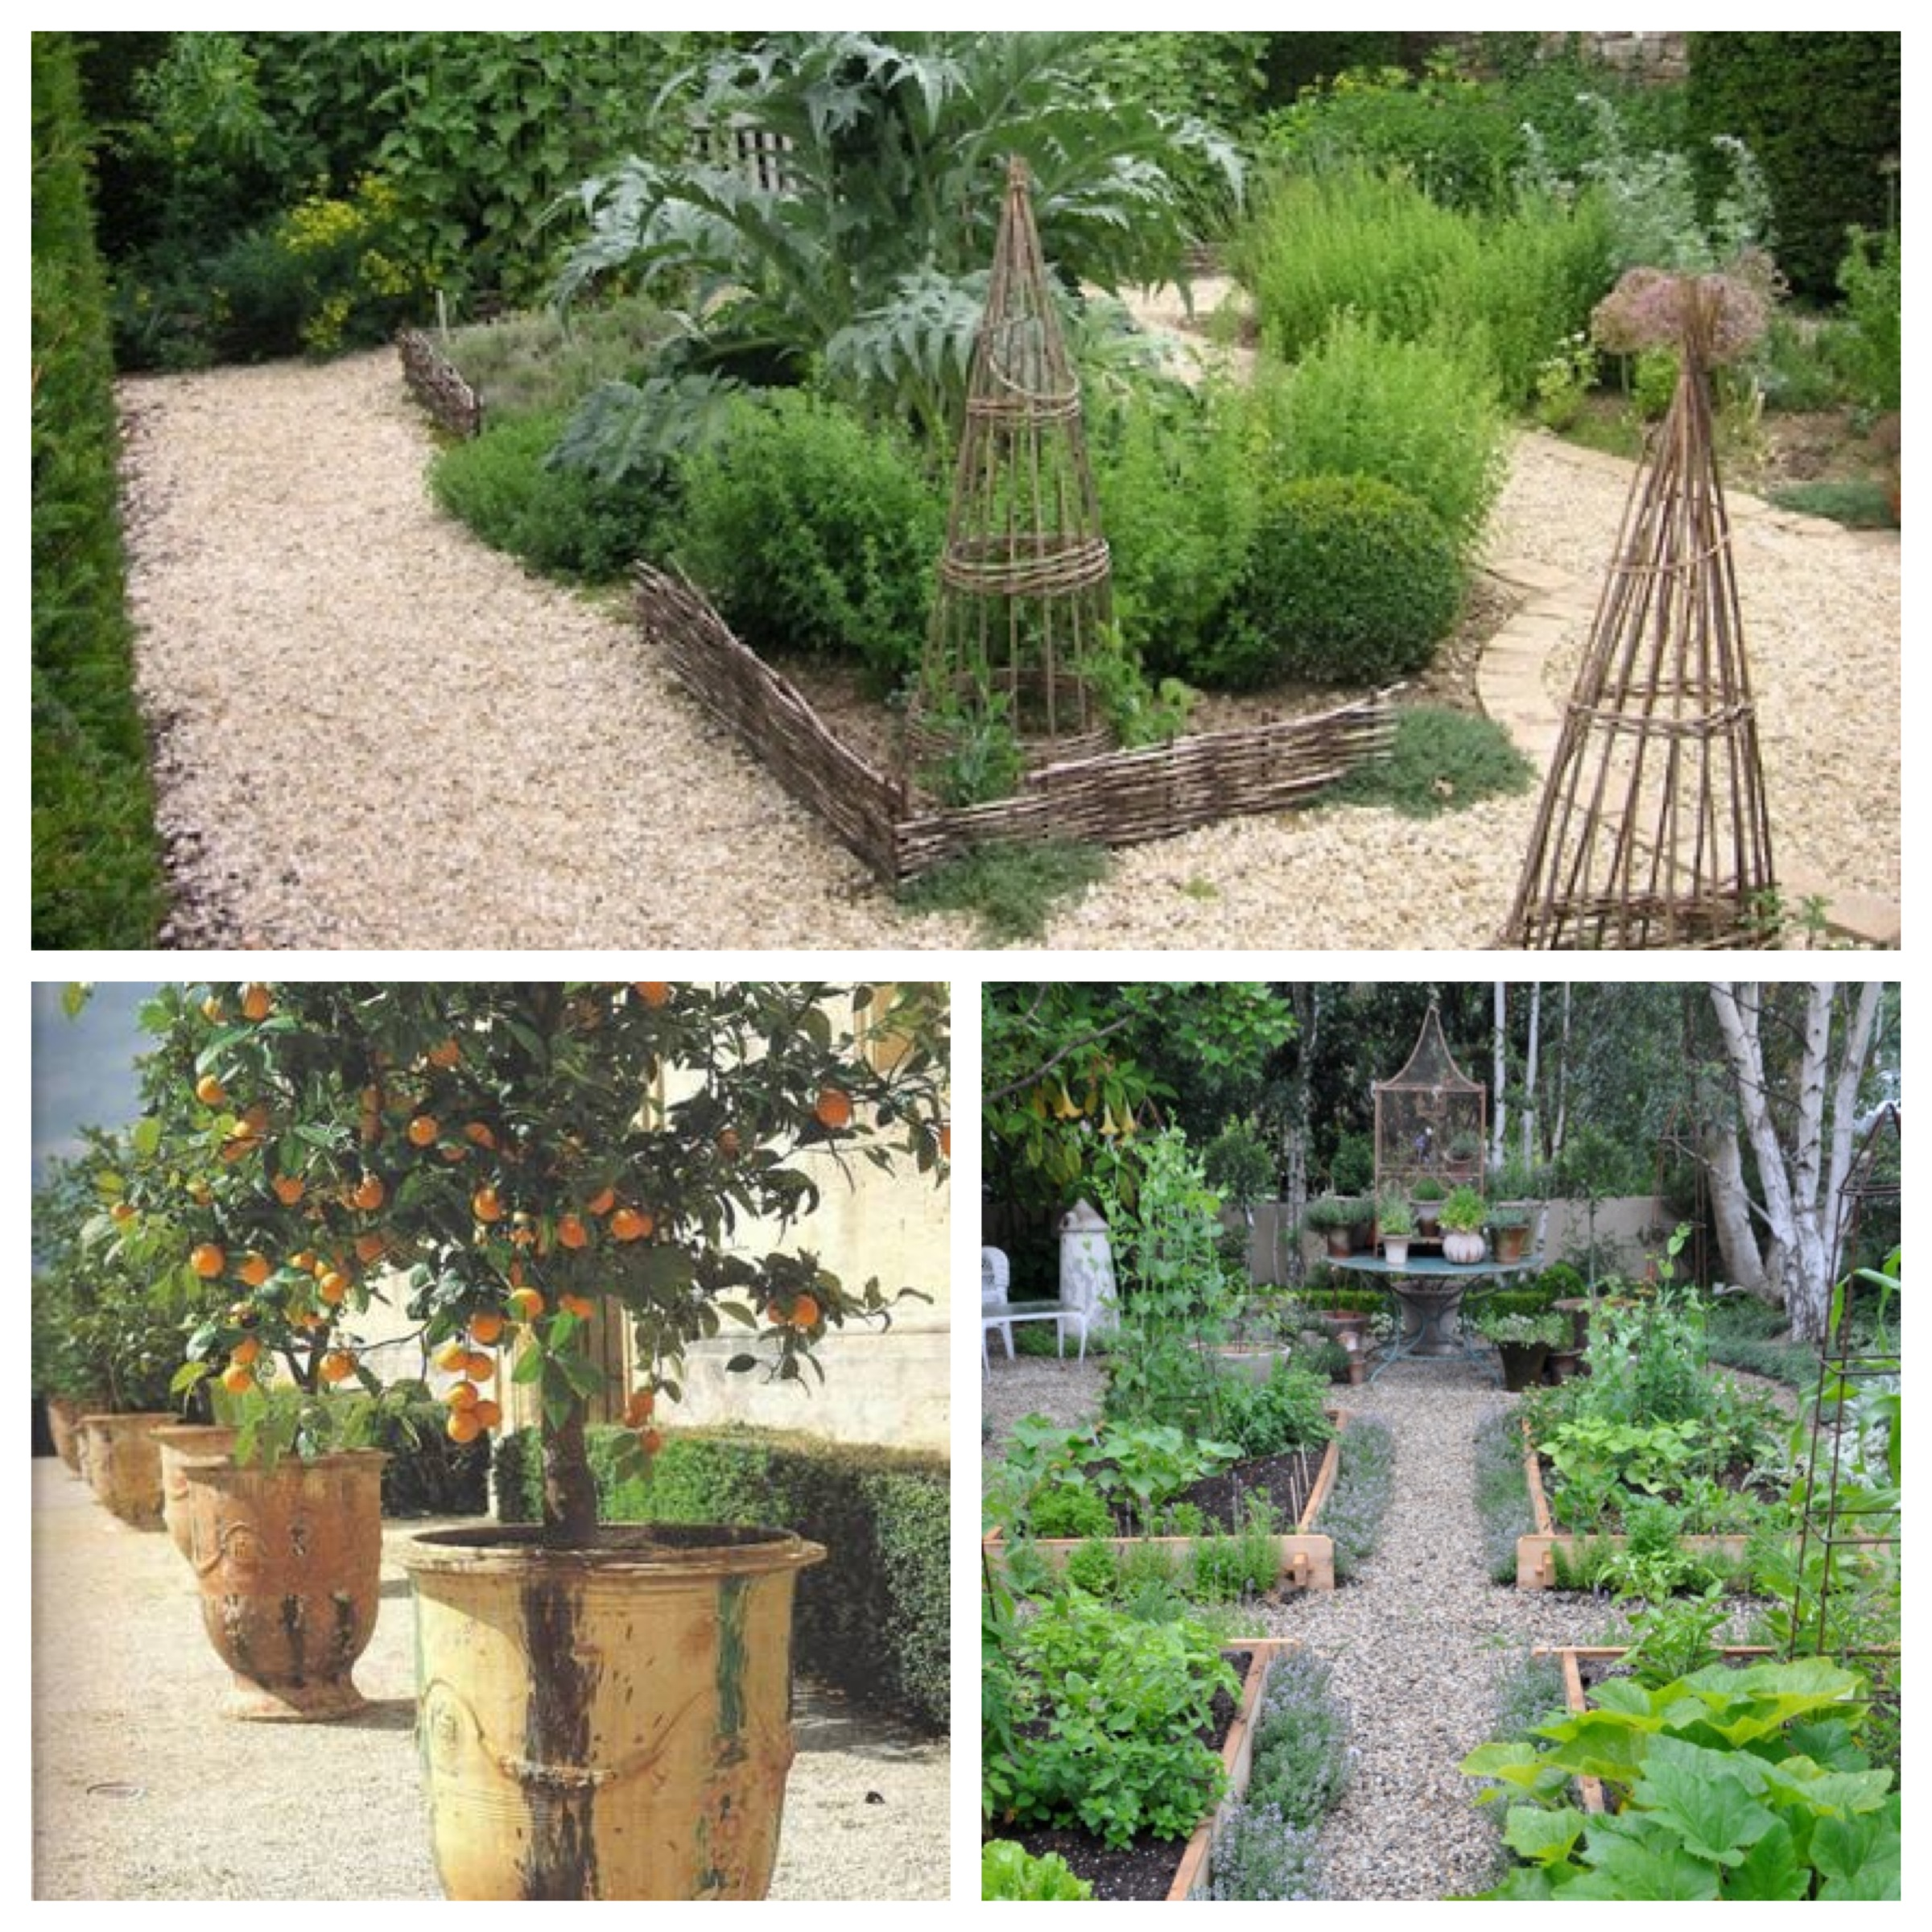 Terrace Kitchen Garden Kitchen Garden Belles Idees